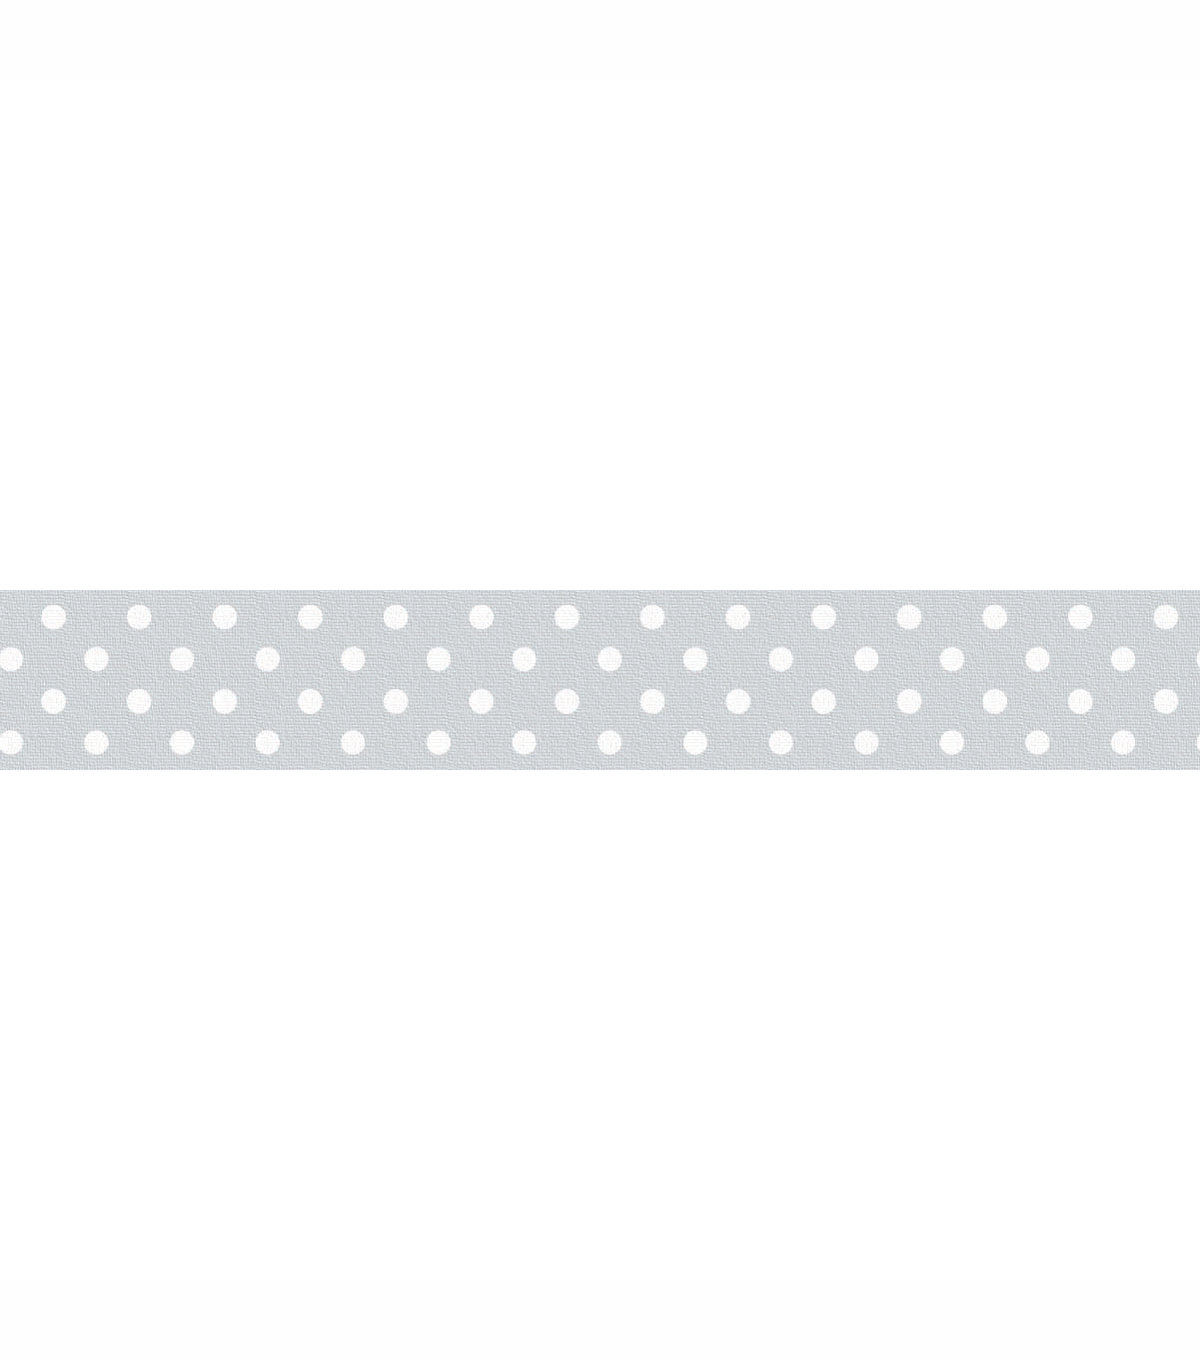 Washi Tape 15mm 12 Yards/Roll-Grey Swiss Dot